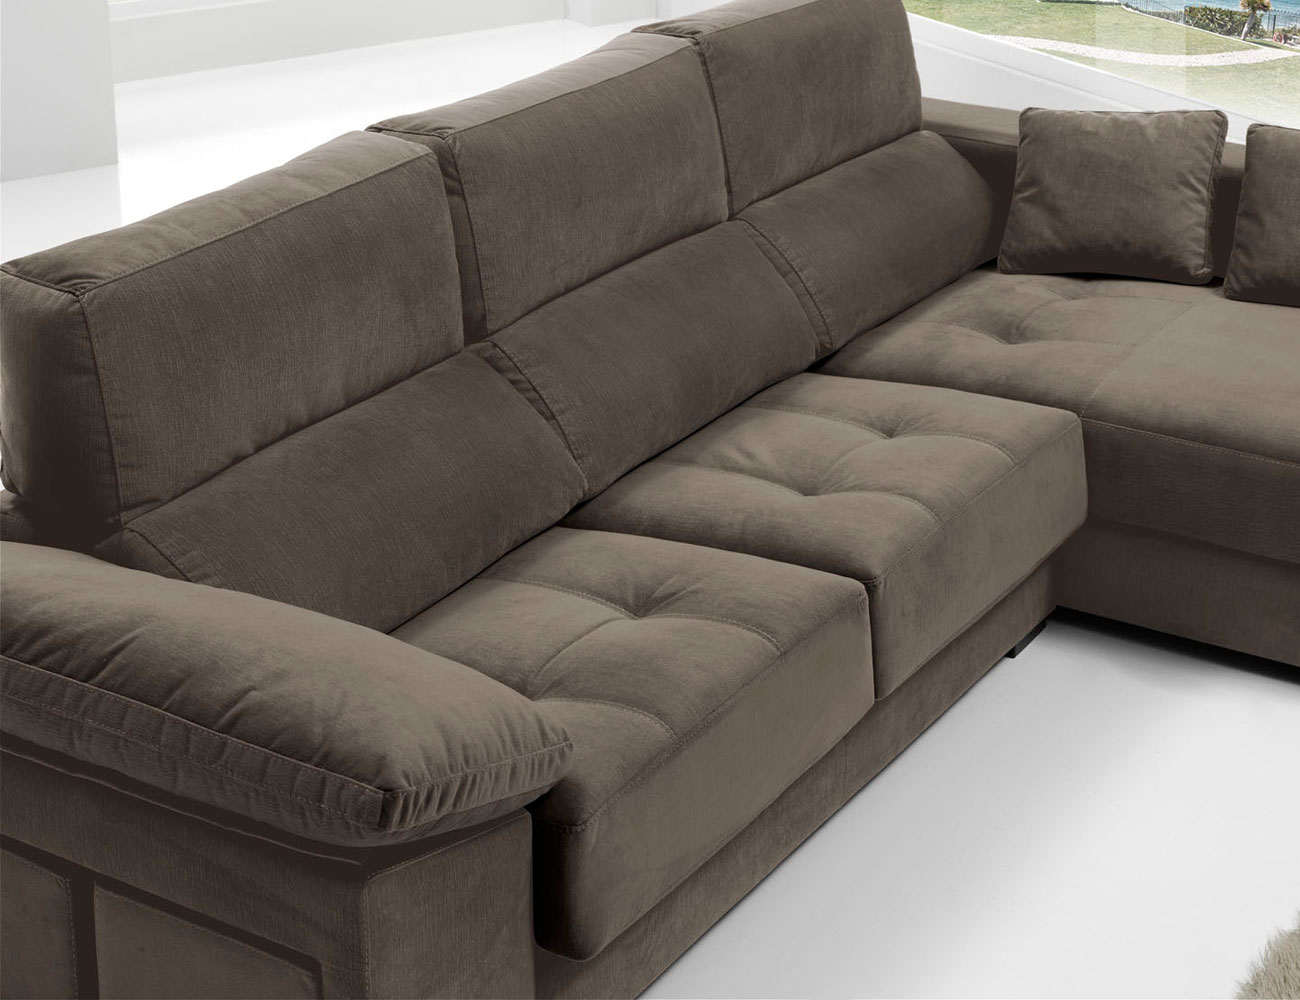 Sofa chaiselongue anti manchas bering pouf 270